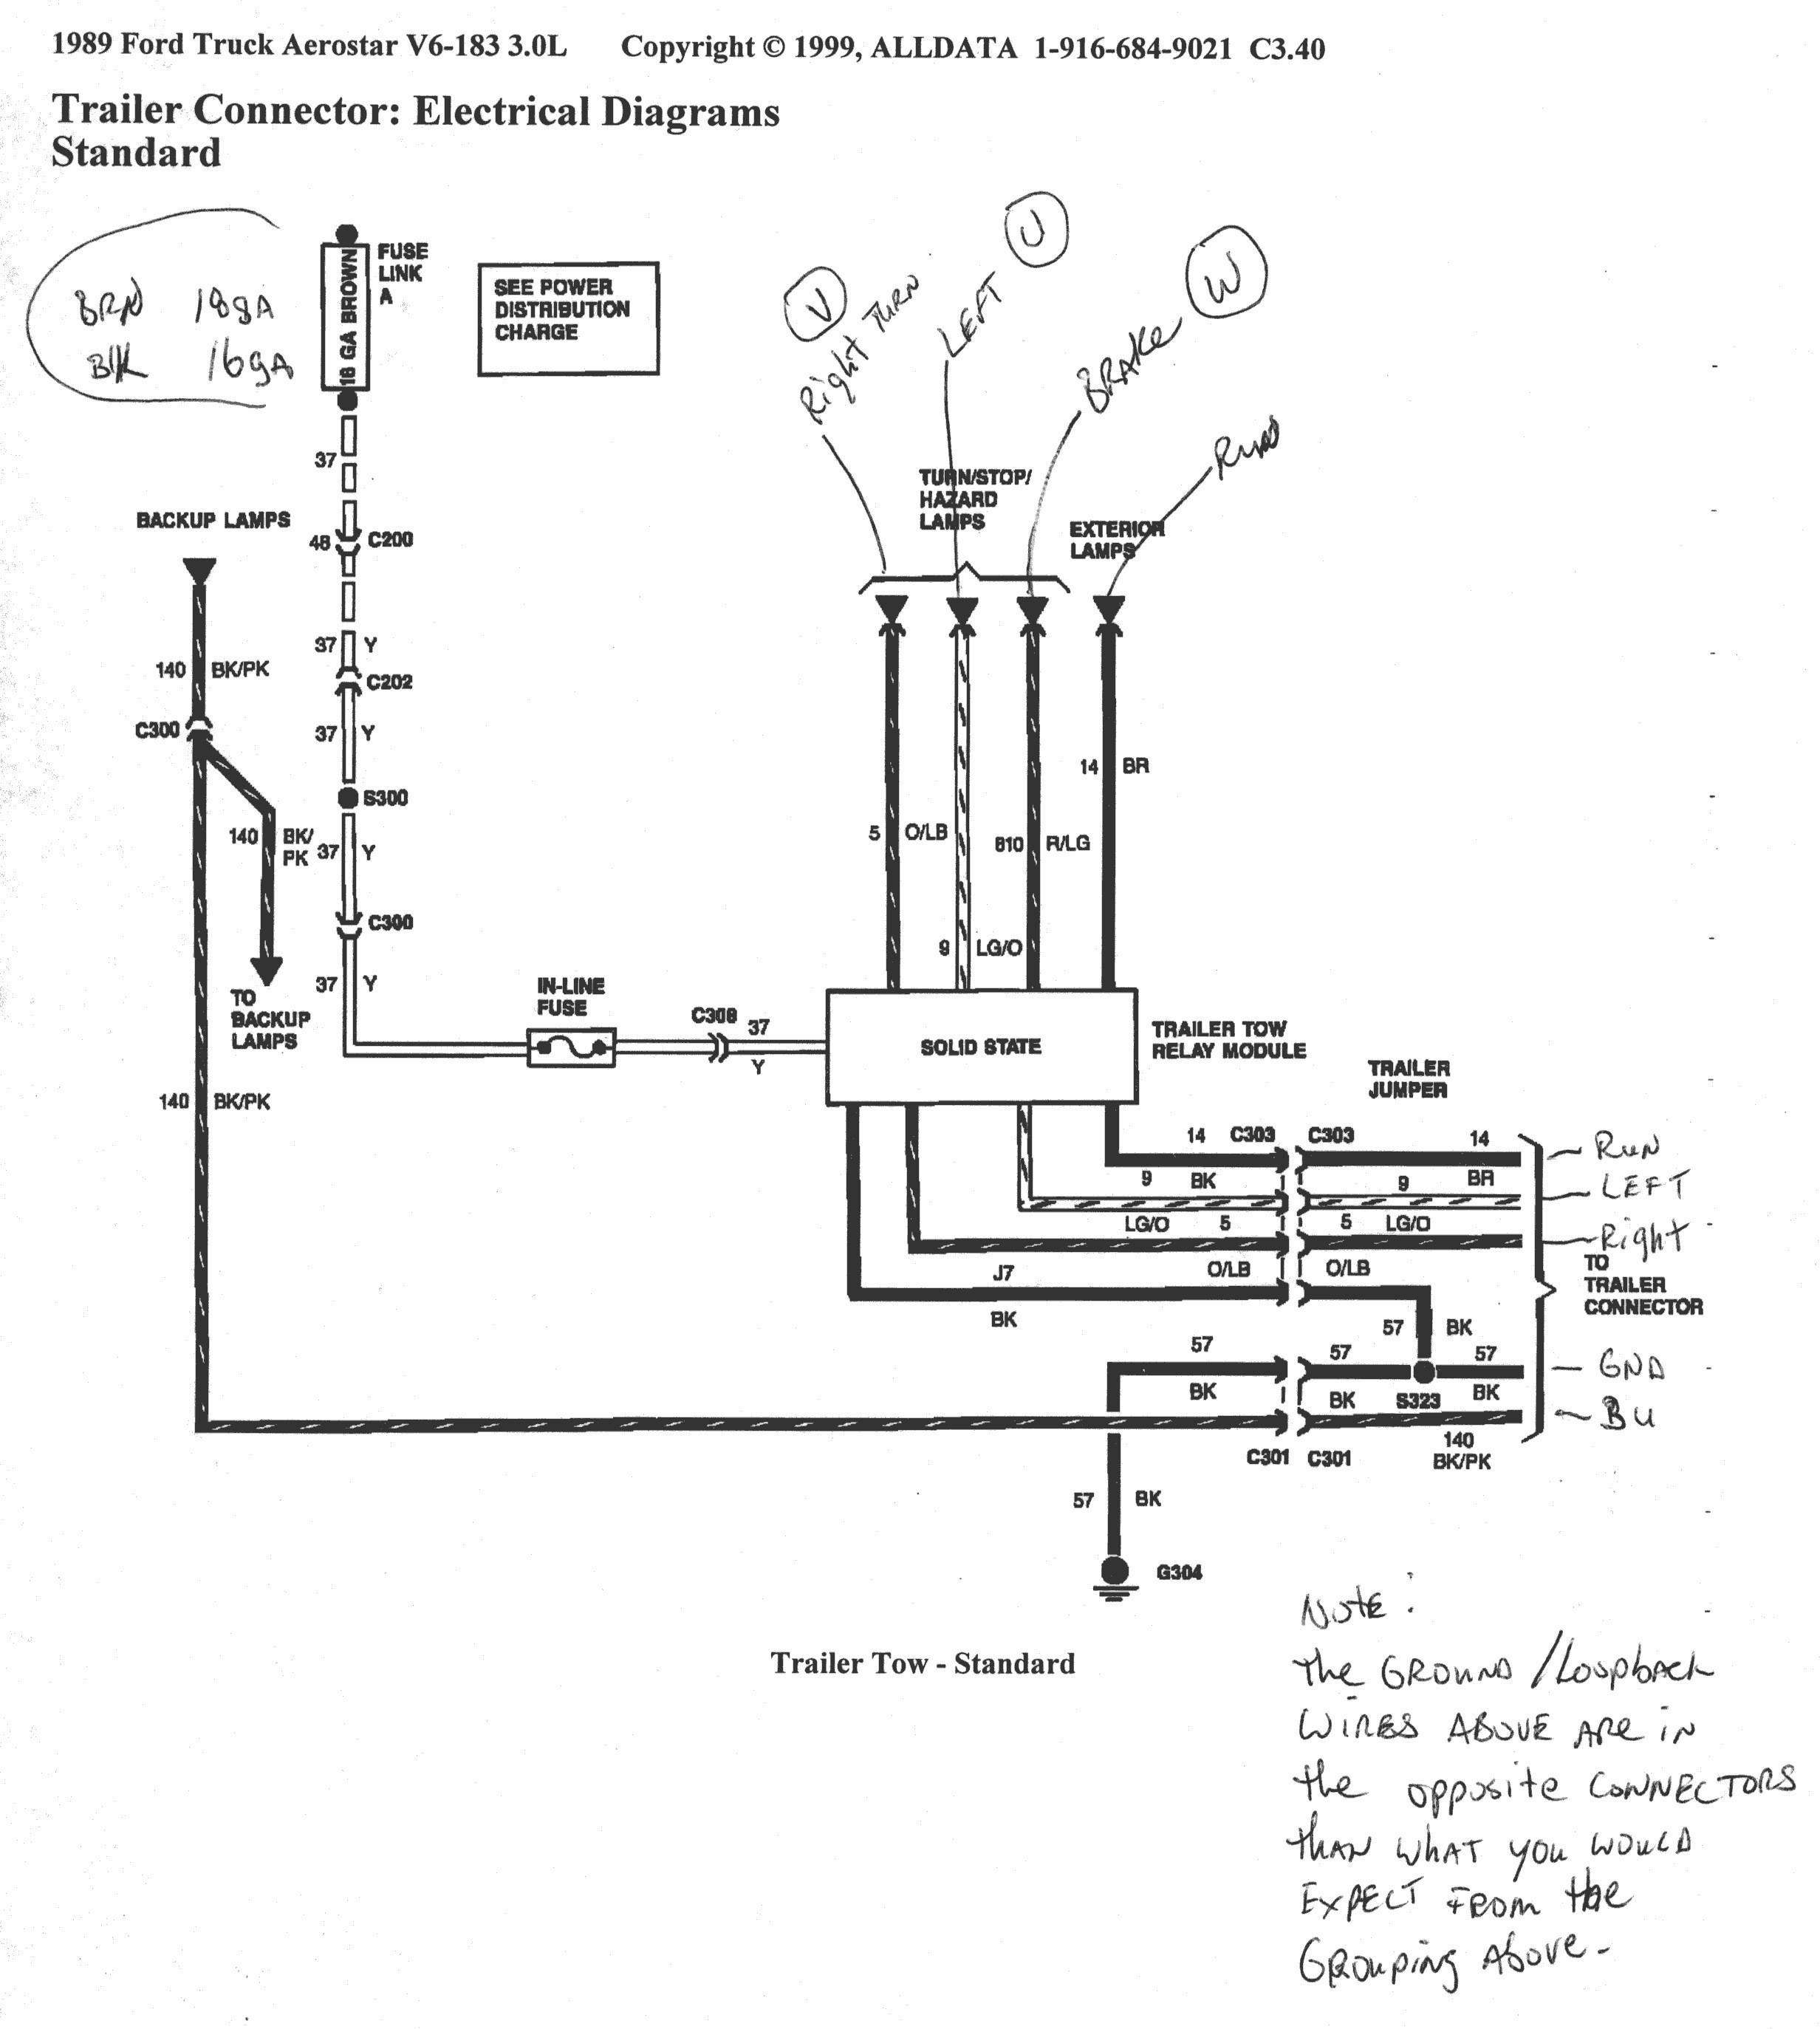 1991 ford F150 Engine Diagram Light Wiring Diagram for 1995 F150 Trusted Wiring Diagrams • Of 1991 ford F150 Engine Diagram Light Wiring Diagram for 1995 F150 Trusted Wiring Diagrams •